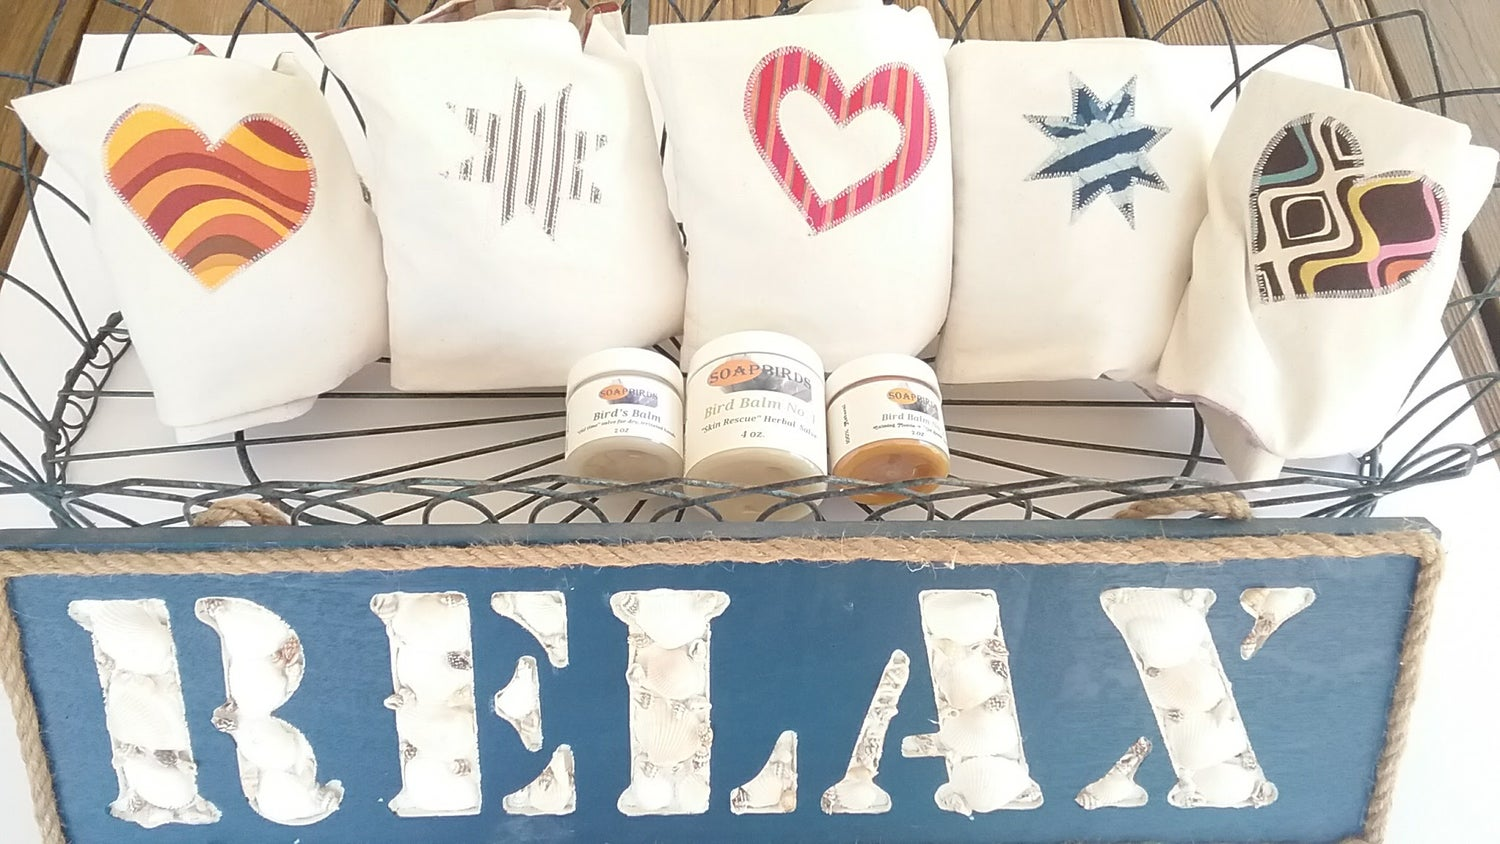 Image of Rice Heating Pad/Gift for Mom/Athlete Gift/Caregiver Gift/Personalized Gifts